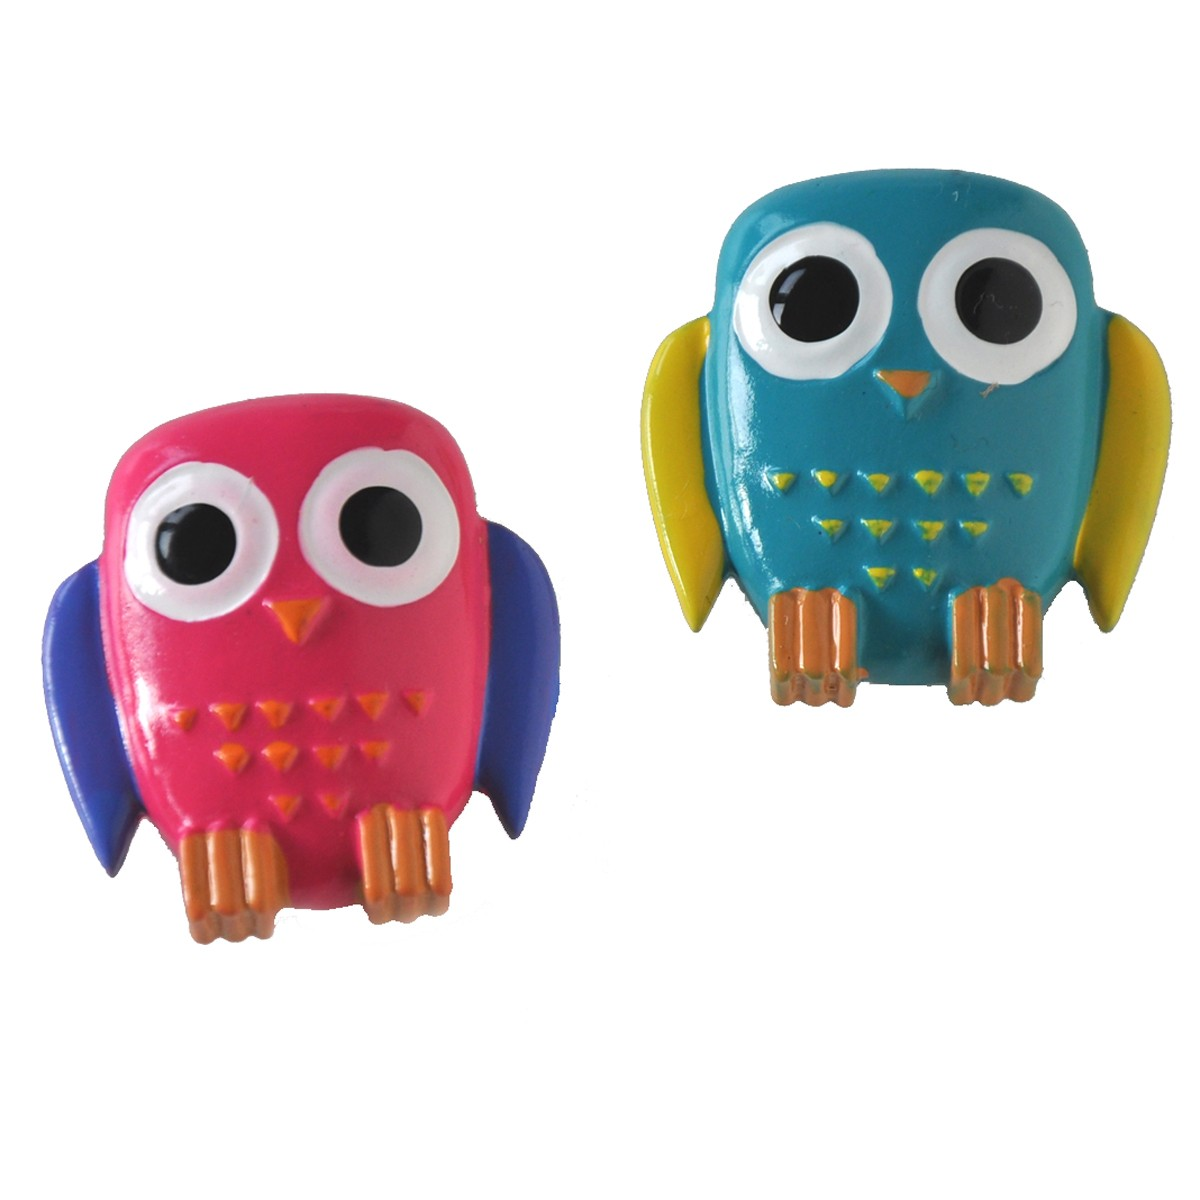 "Superstarka magneter ""ugglor"" 2-pack"